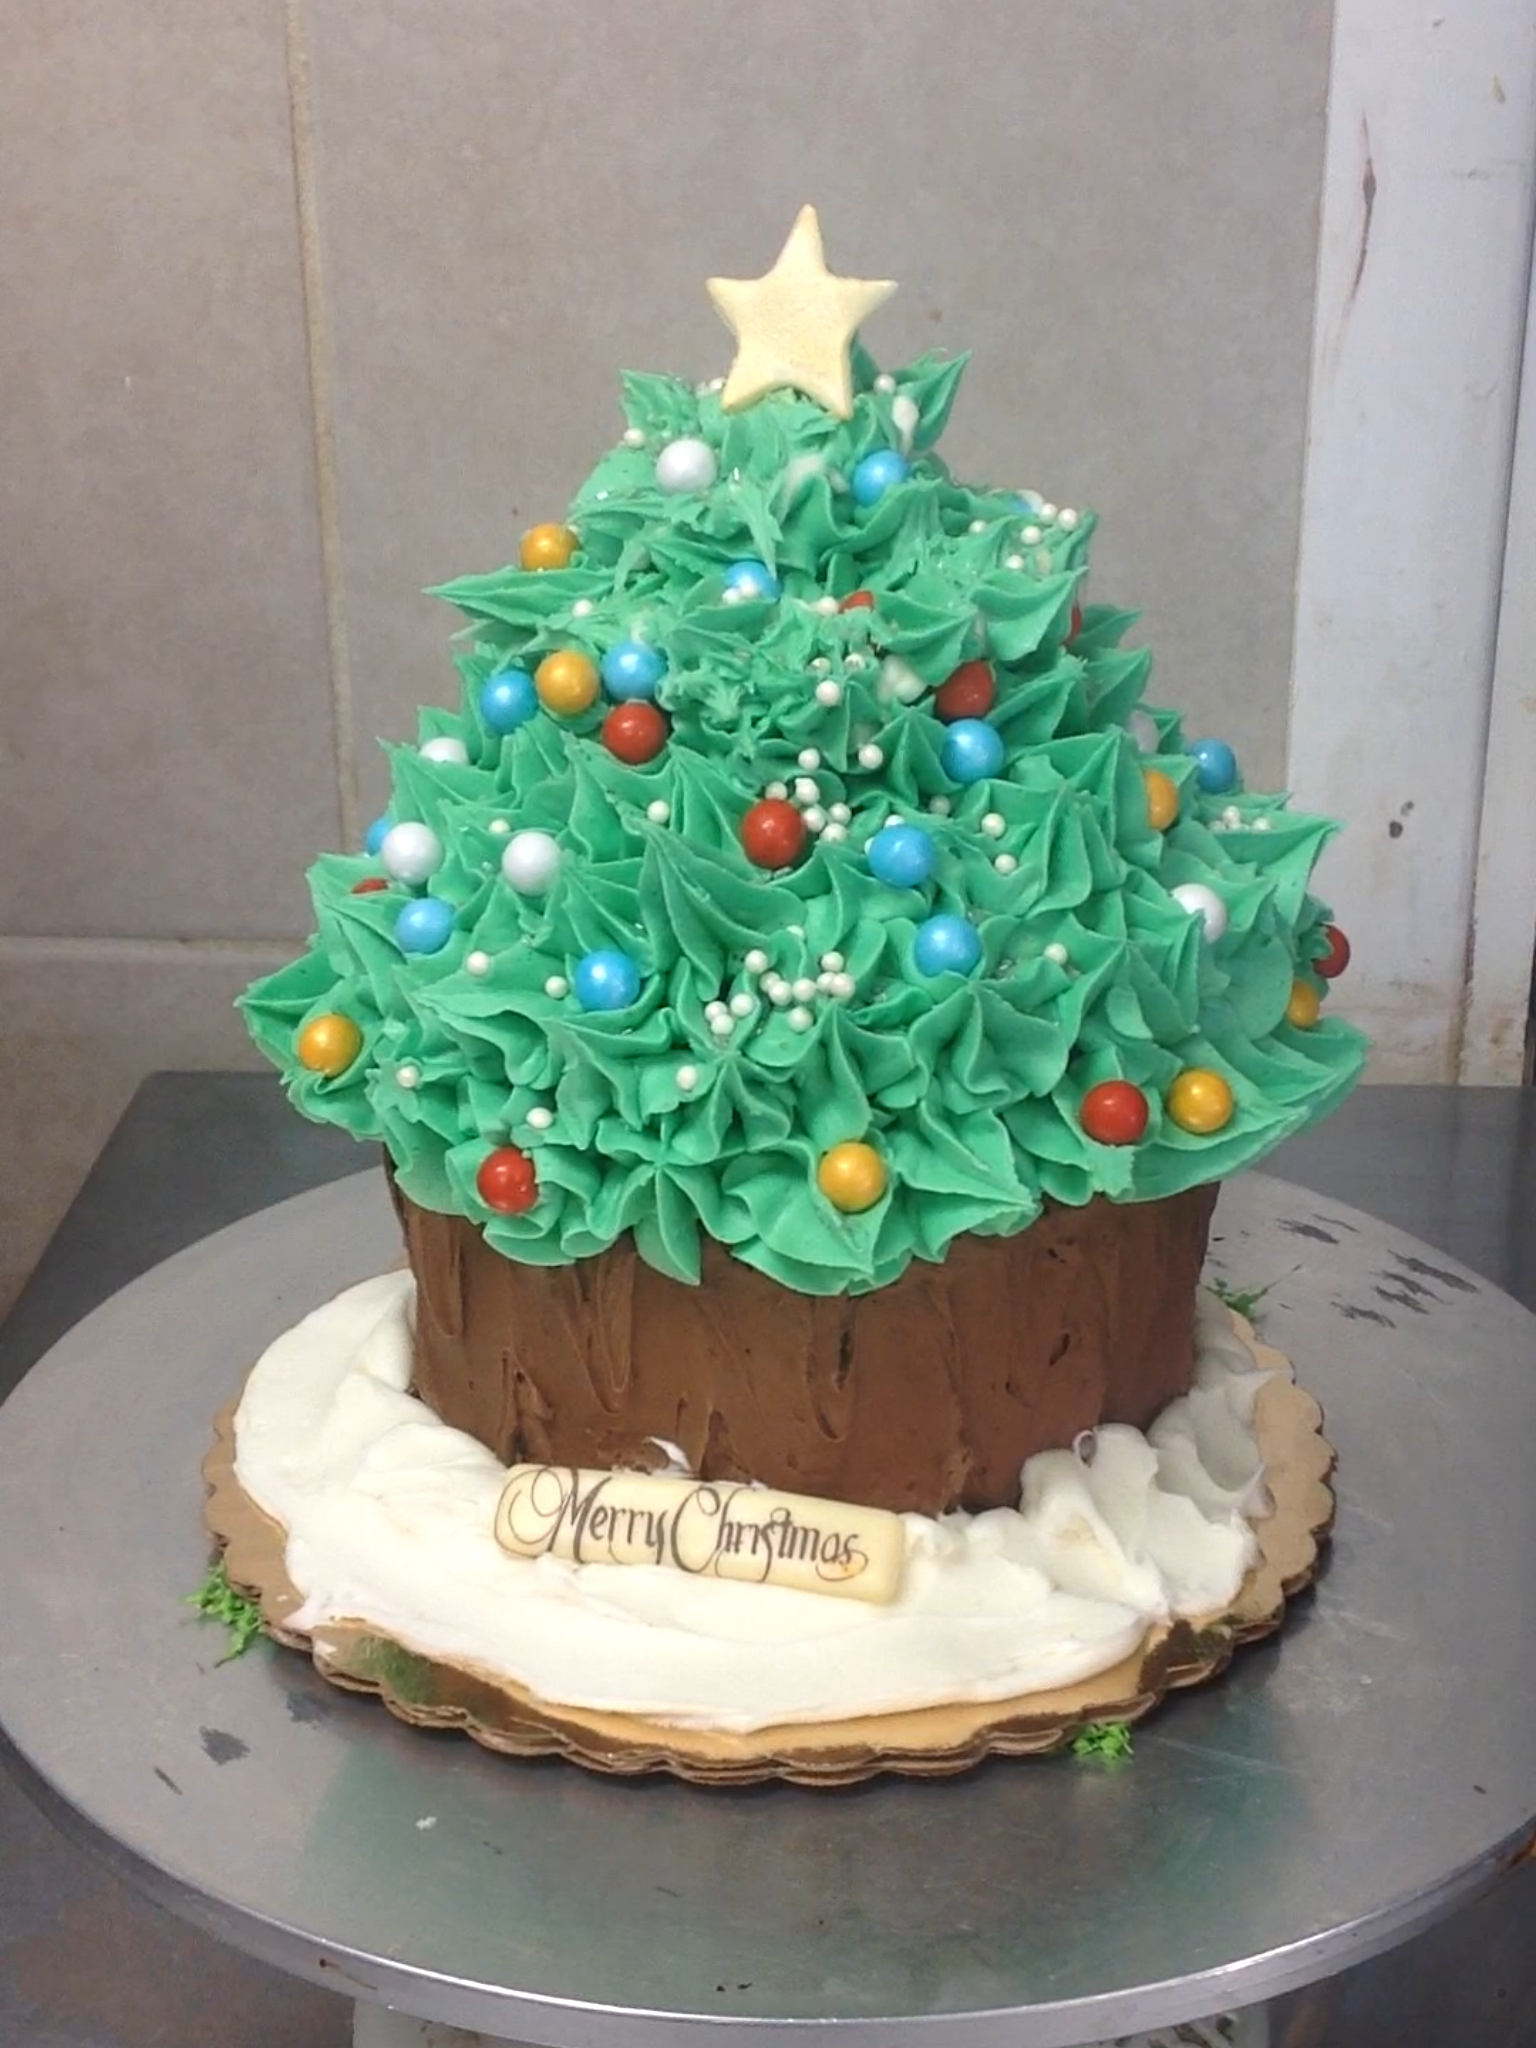 Holiday Cakes at Dolce and Biscotti Italian Bakery